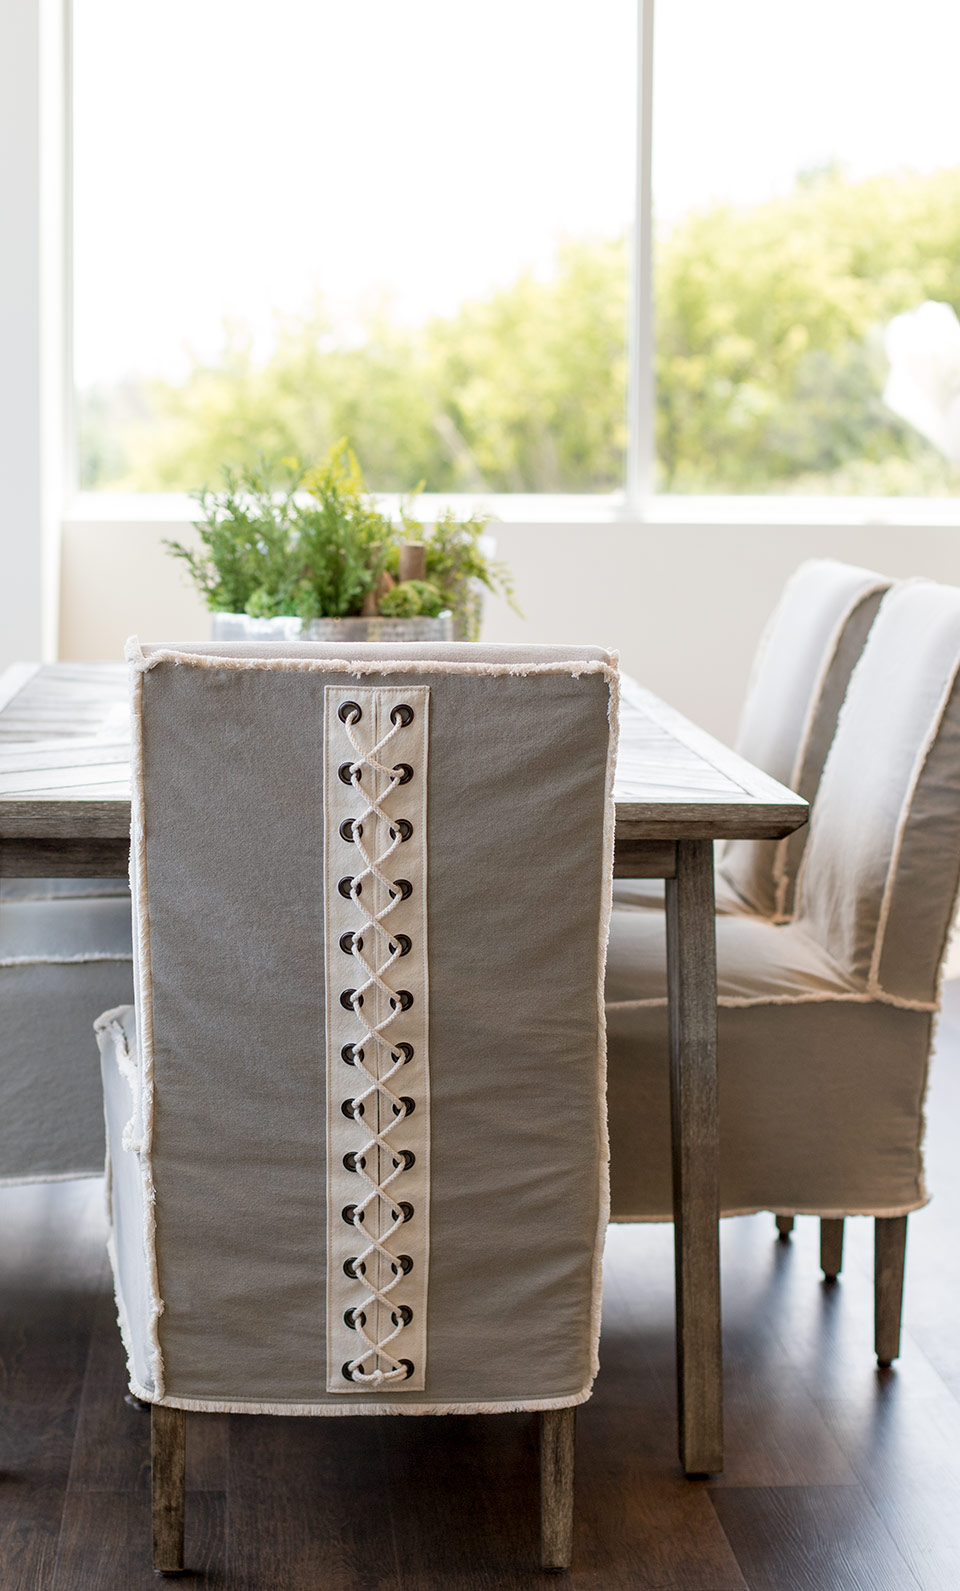 Light and airy dining room - the slipcovered dining chair with decorative lacing adds personality and a unique decorating touch!